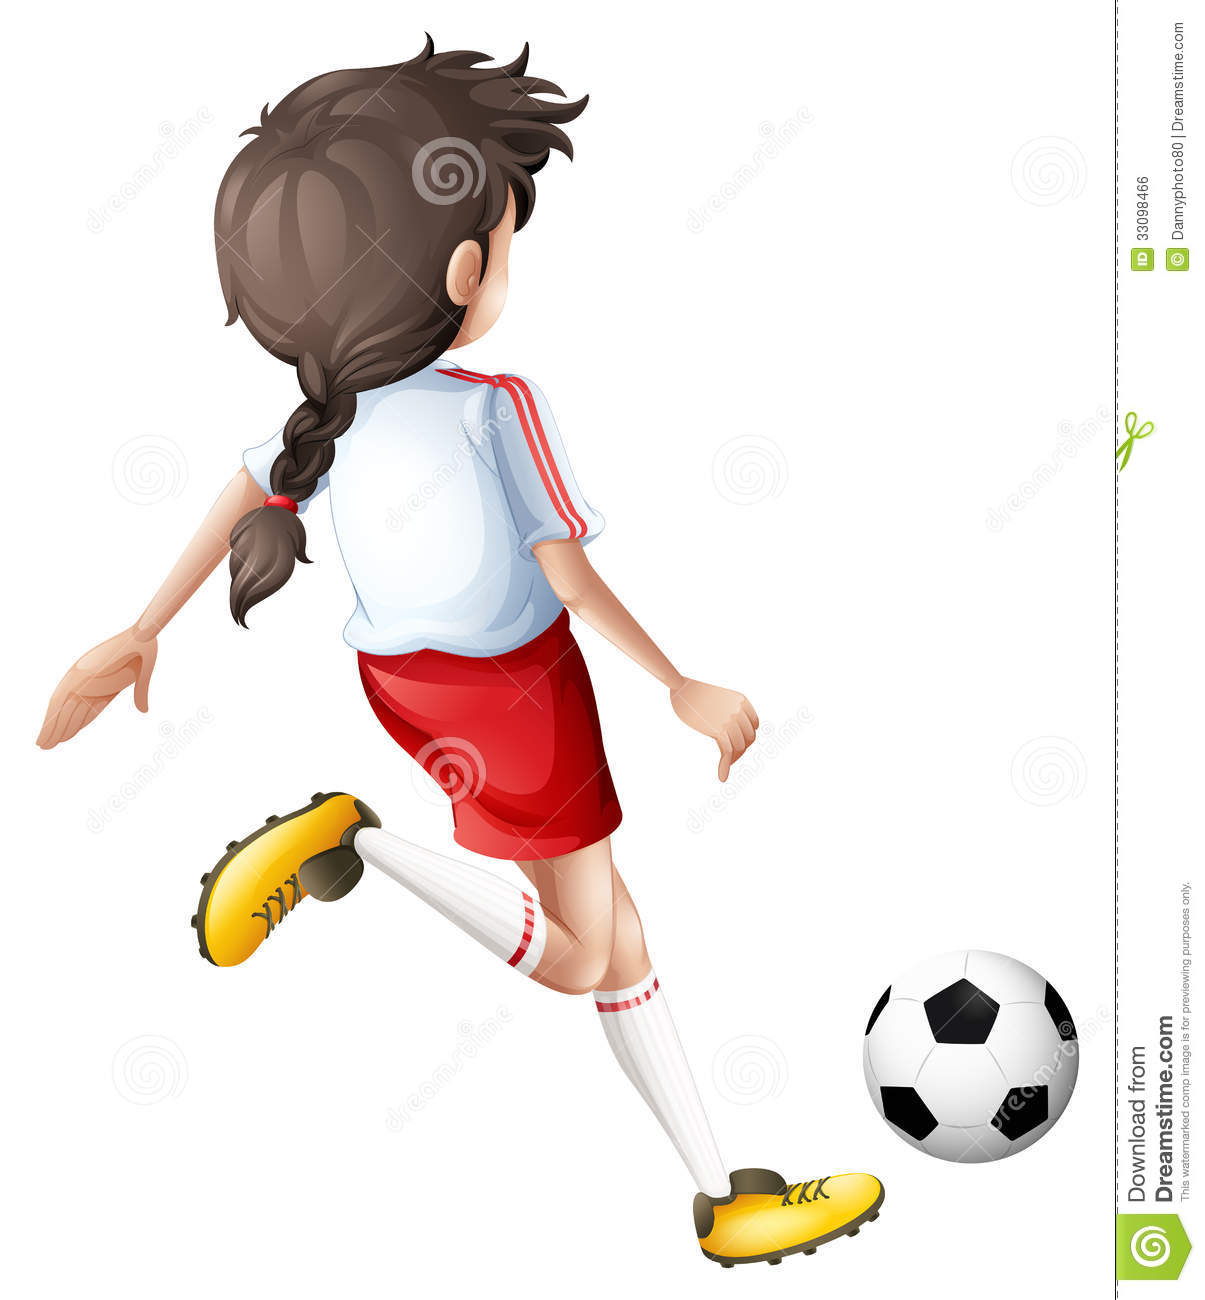 ... Girl Kicking A Soccer Ball Royalty Free Stock Image - Image: 33098466